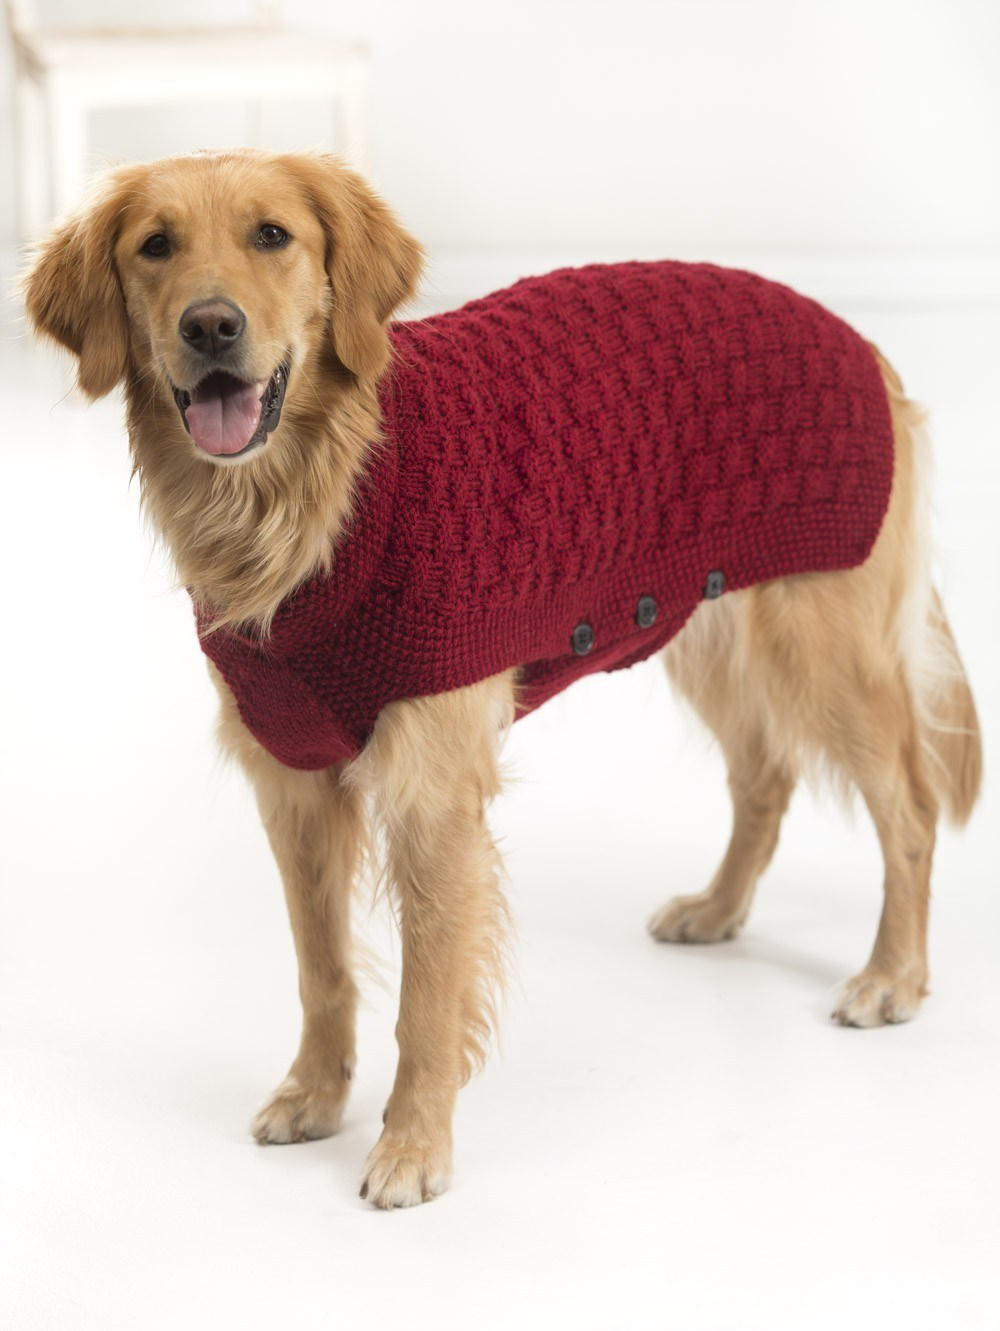 Knitted Dog Coat Pattern 10 Stunning Examples Of Beautiful Fall Dog Sweaters Free Knitting